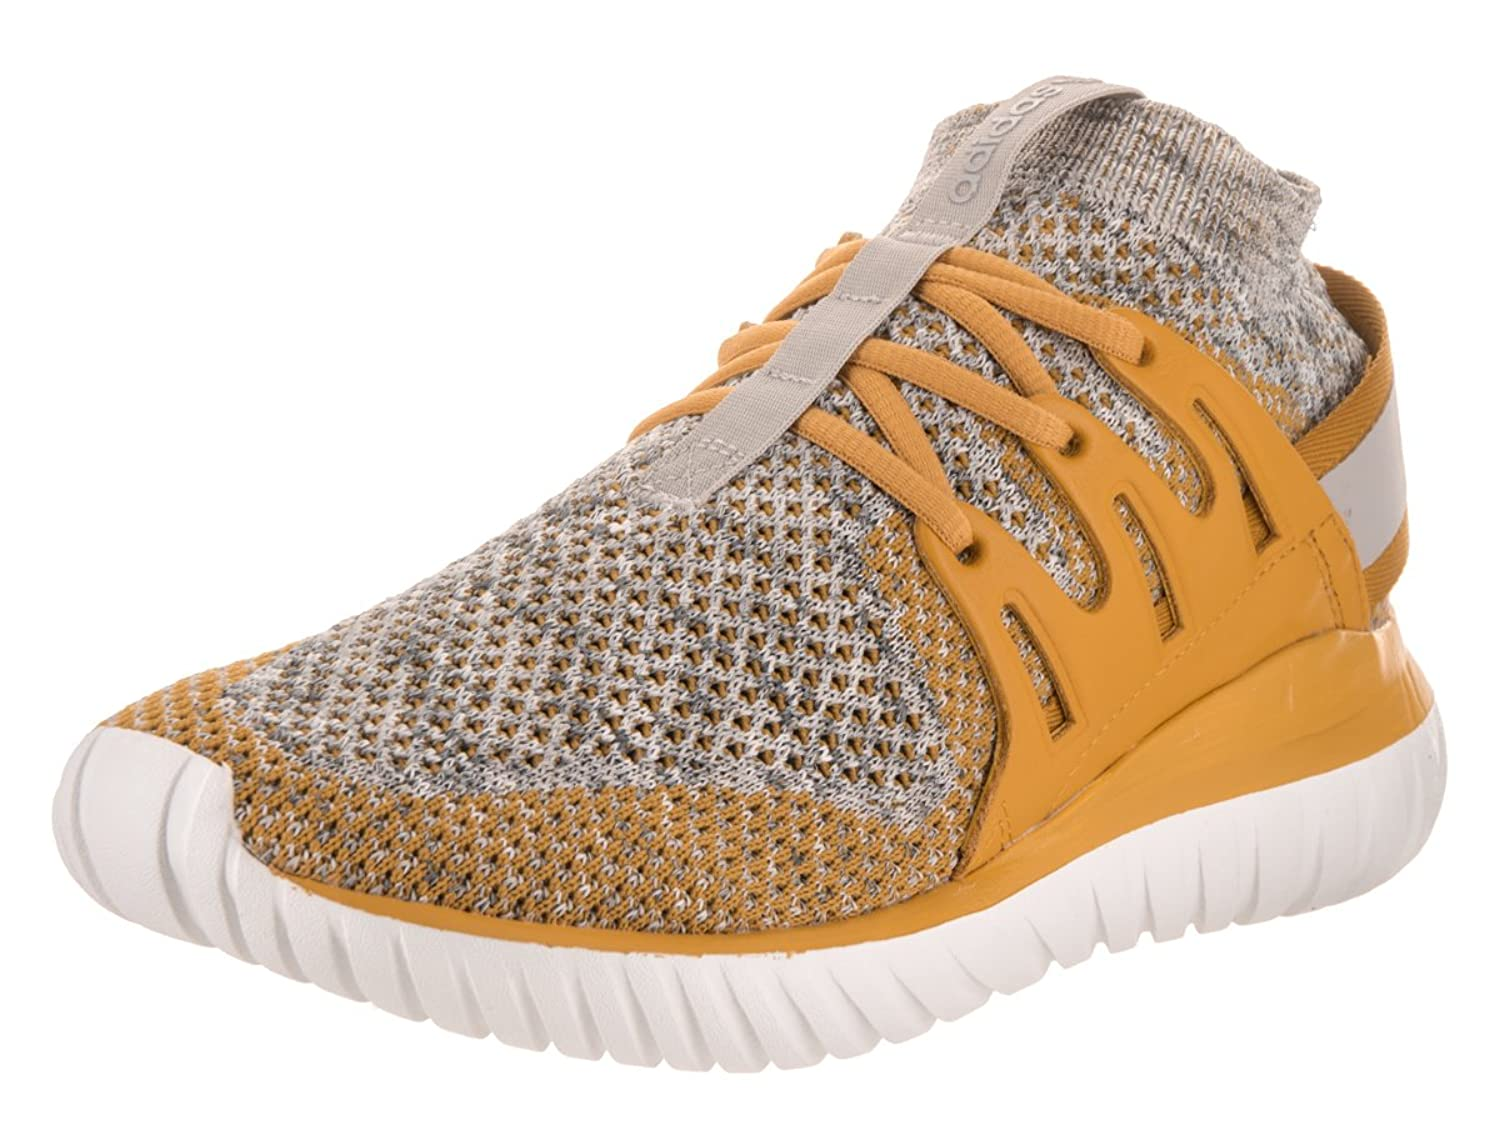 Buy Adidas Cheap Tubular Runner Shoes Boost Sale 2018